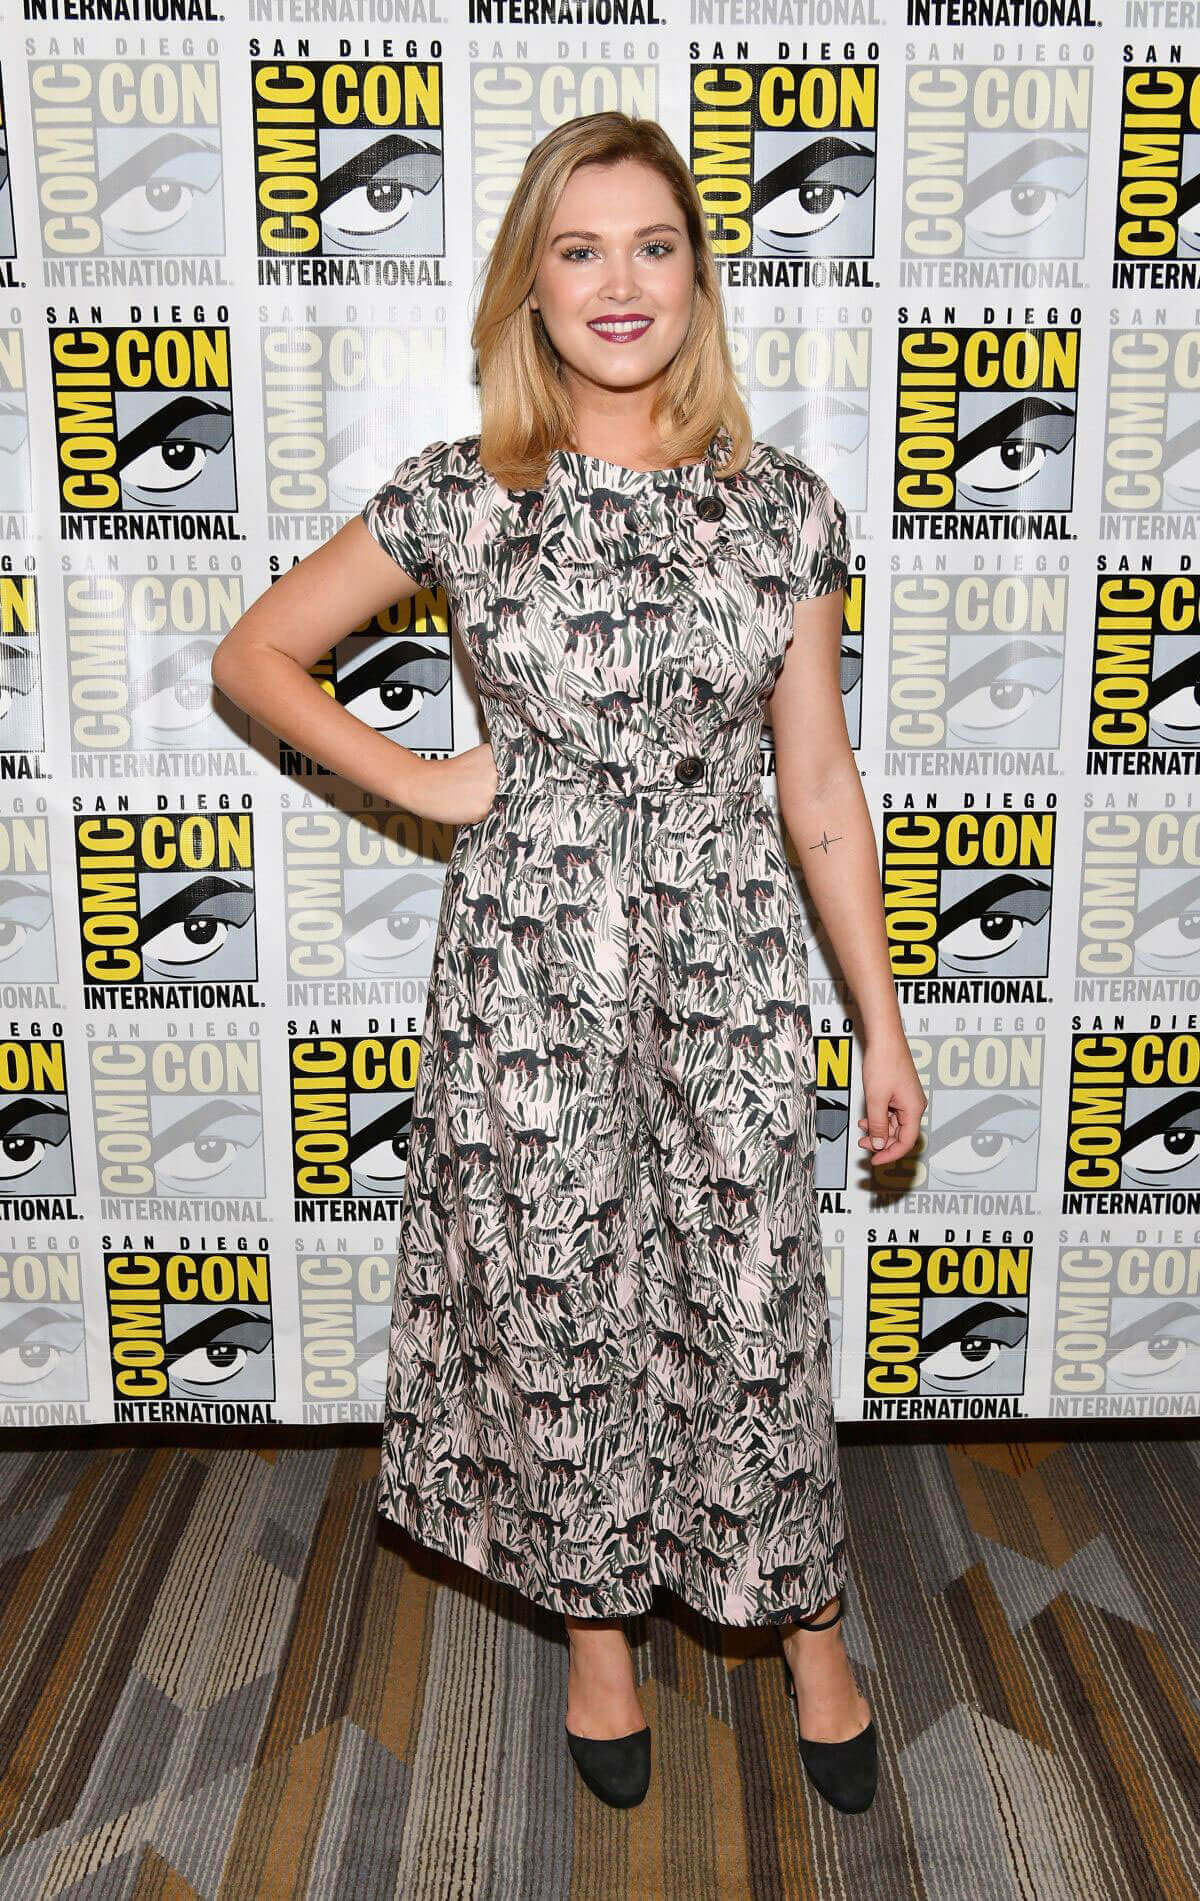 Eliza Taylor at The 100 Press Line at Comic-con in San Diego Images